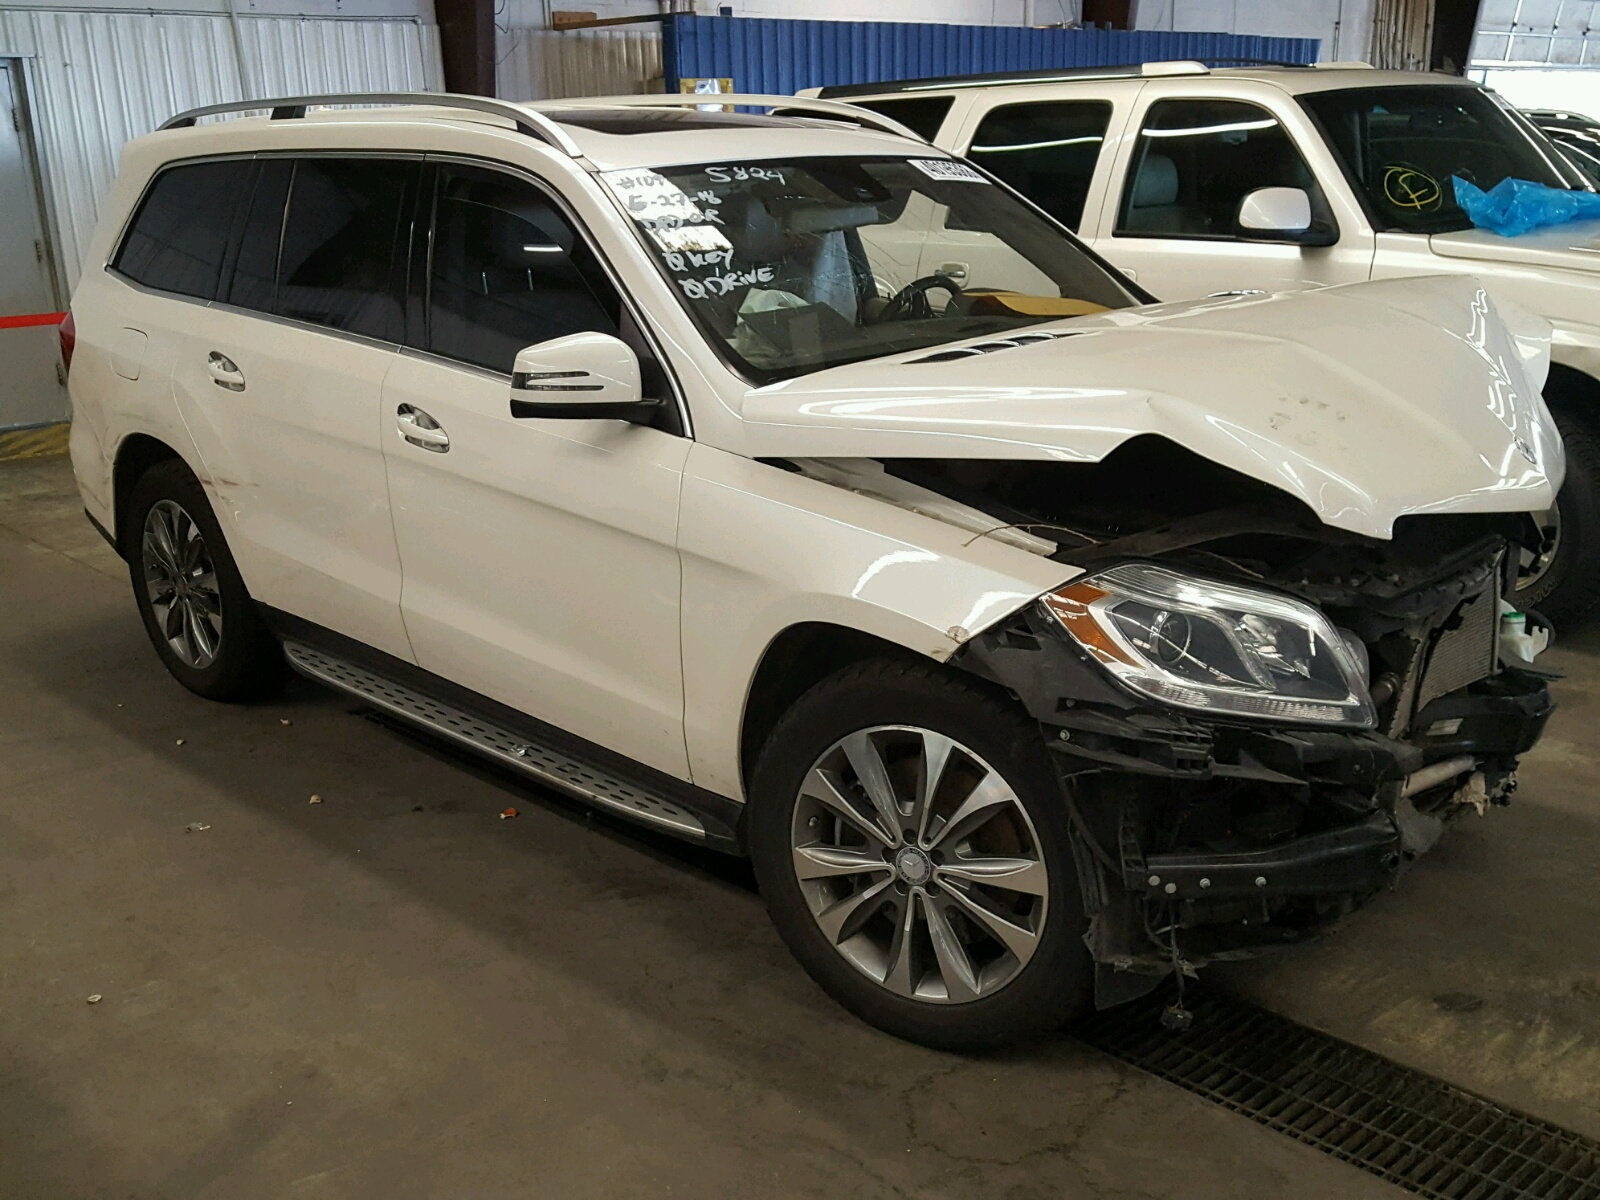 e70d39ad-877d-4f0a-8c98-c847f779bce5 Interesting Info About 2013 Mercedes Gl450 for Sale